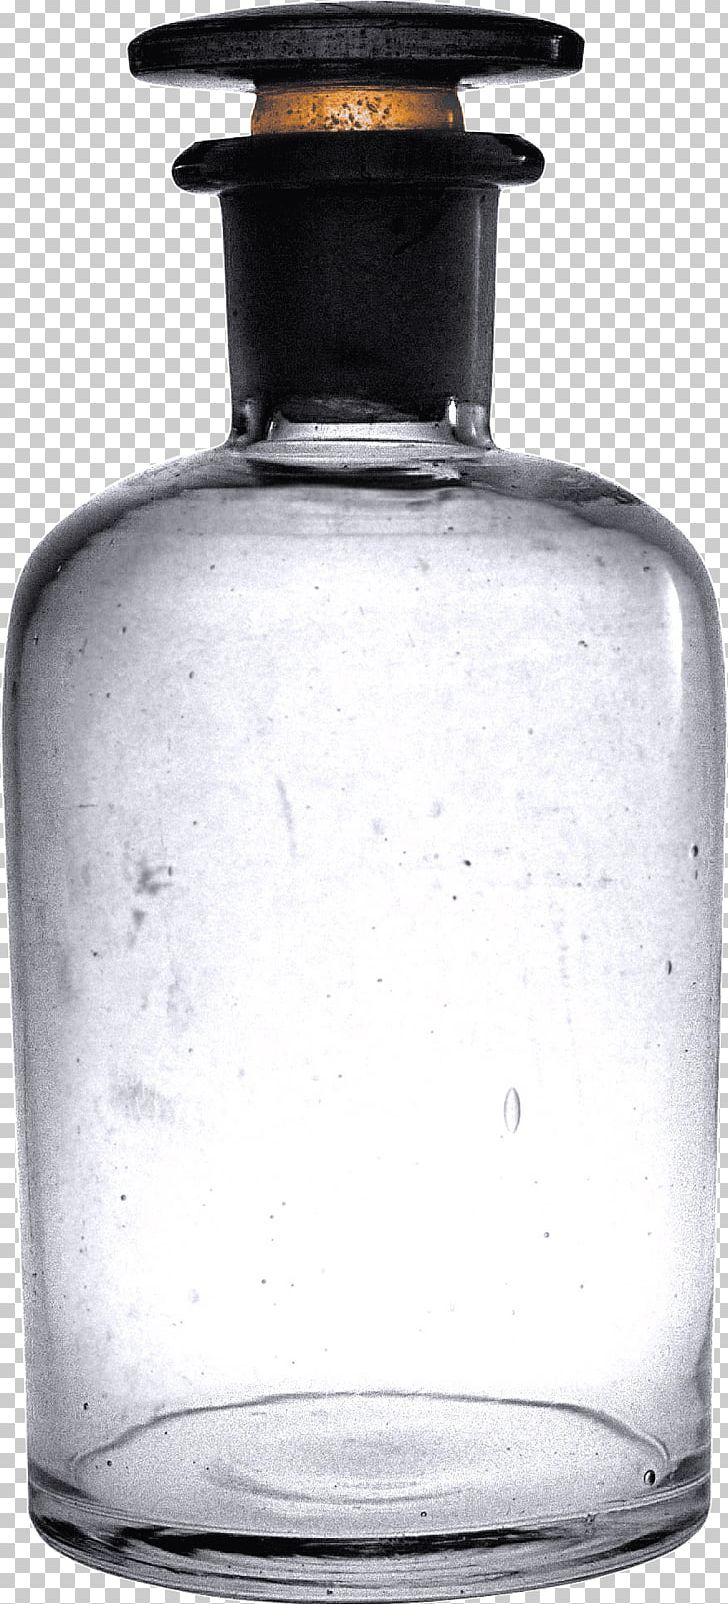 Vintage Empty Bottle PNG, Clipart, Bottle, Objects Free PNG Download.